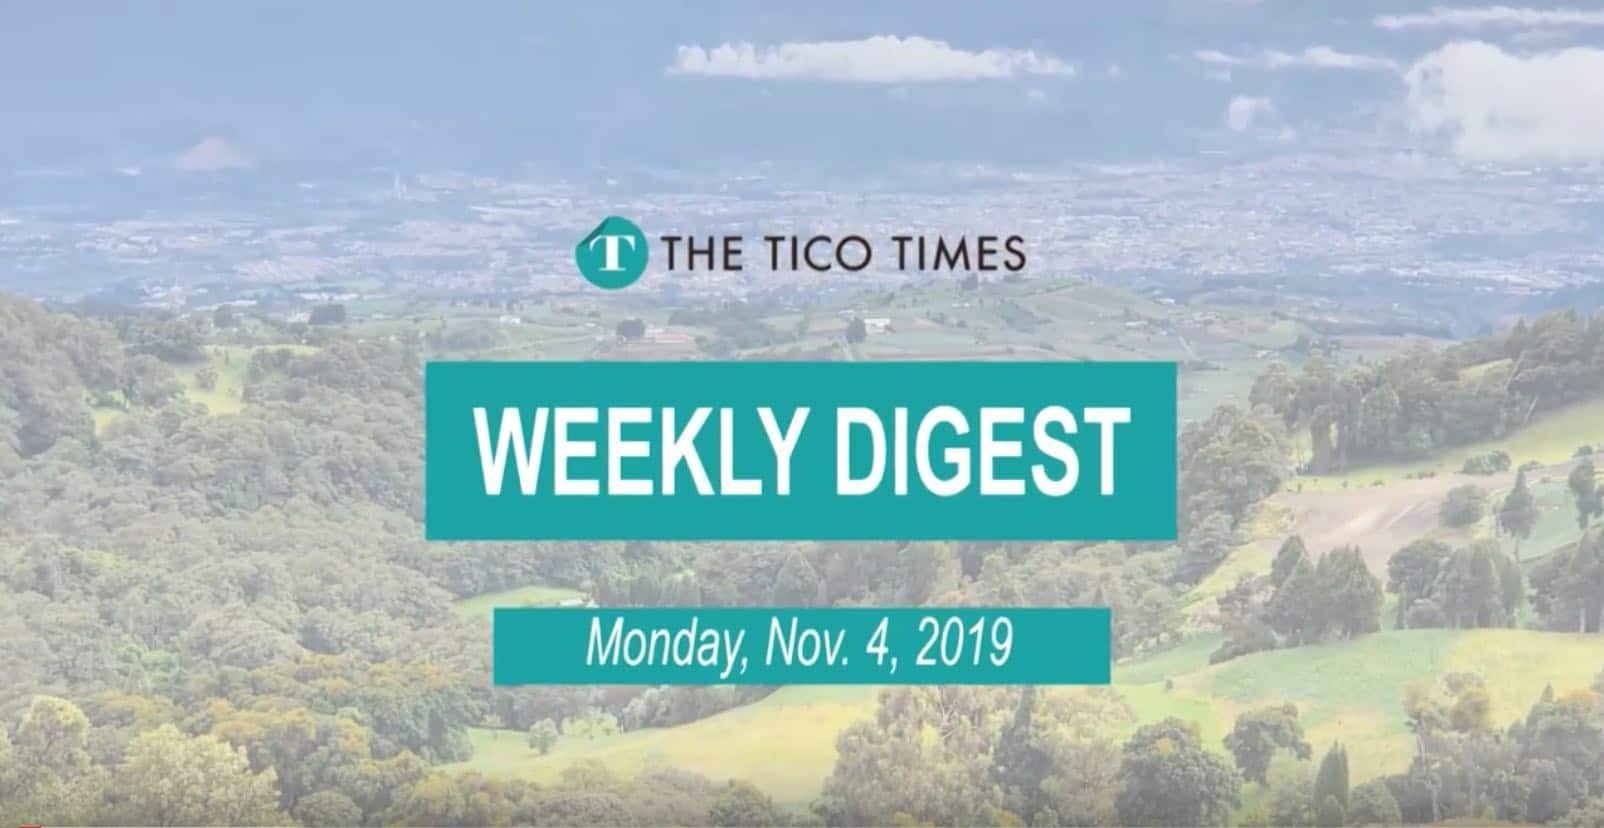 The Tico Times Weekly Digest